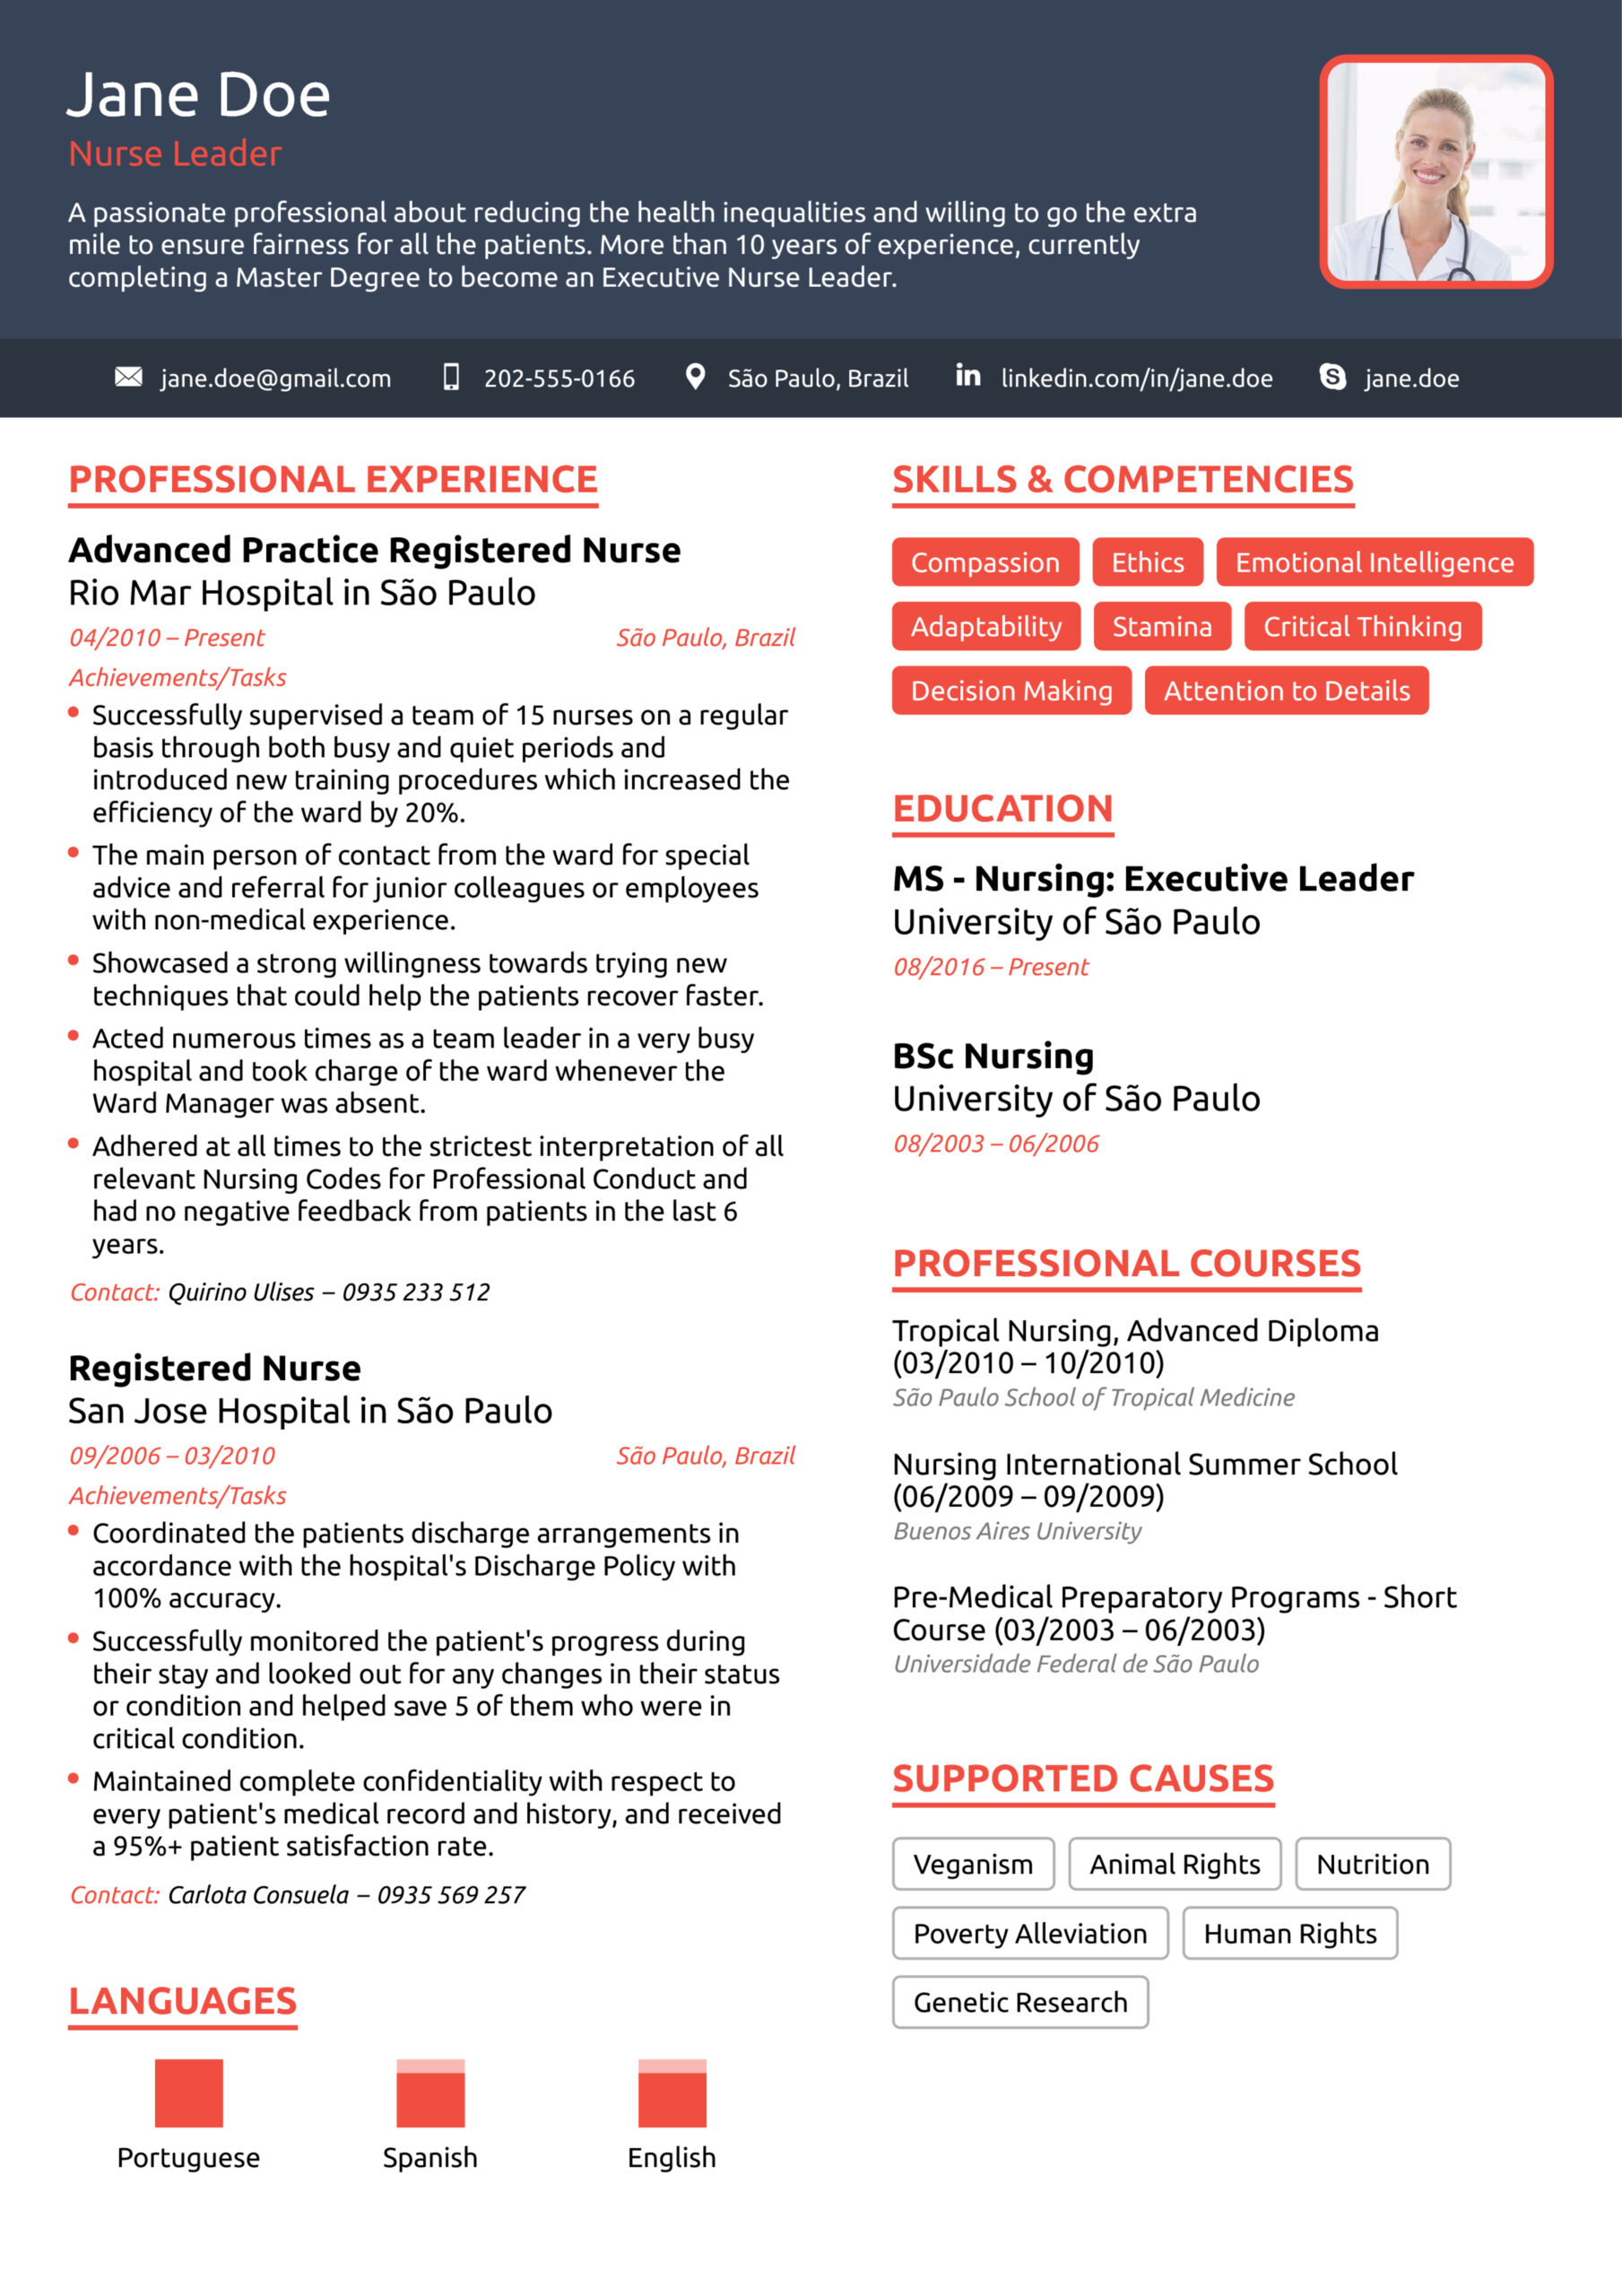 nurse resume example to guide for nursing qualifications examples best free builder nanny Resume Nursing Resume Qualifications Examples